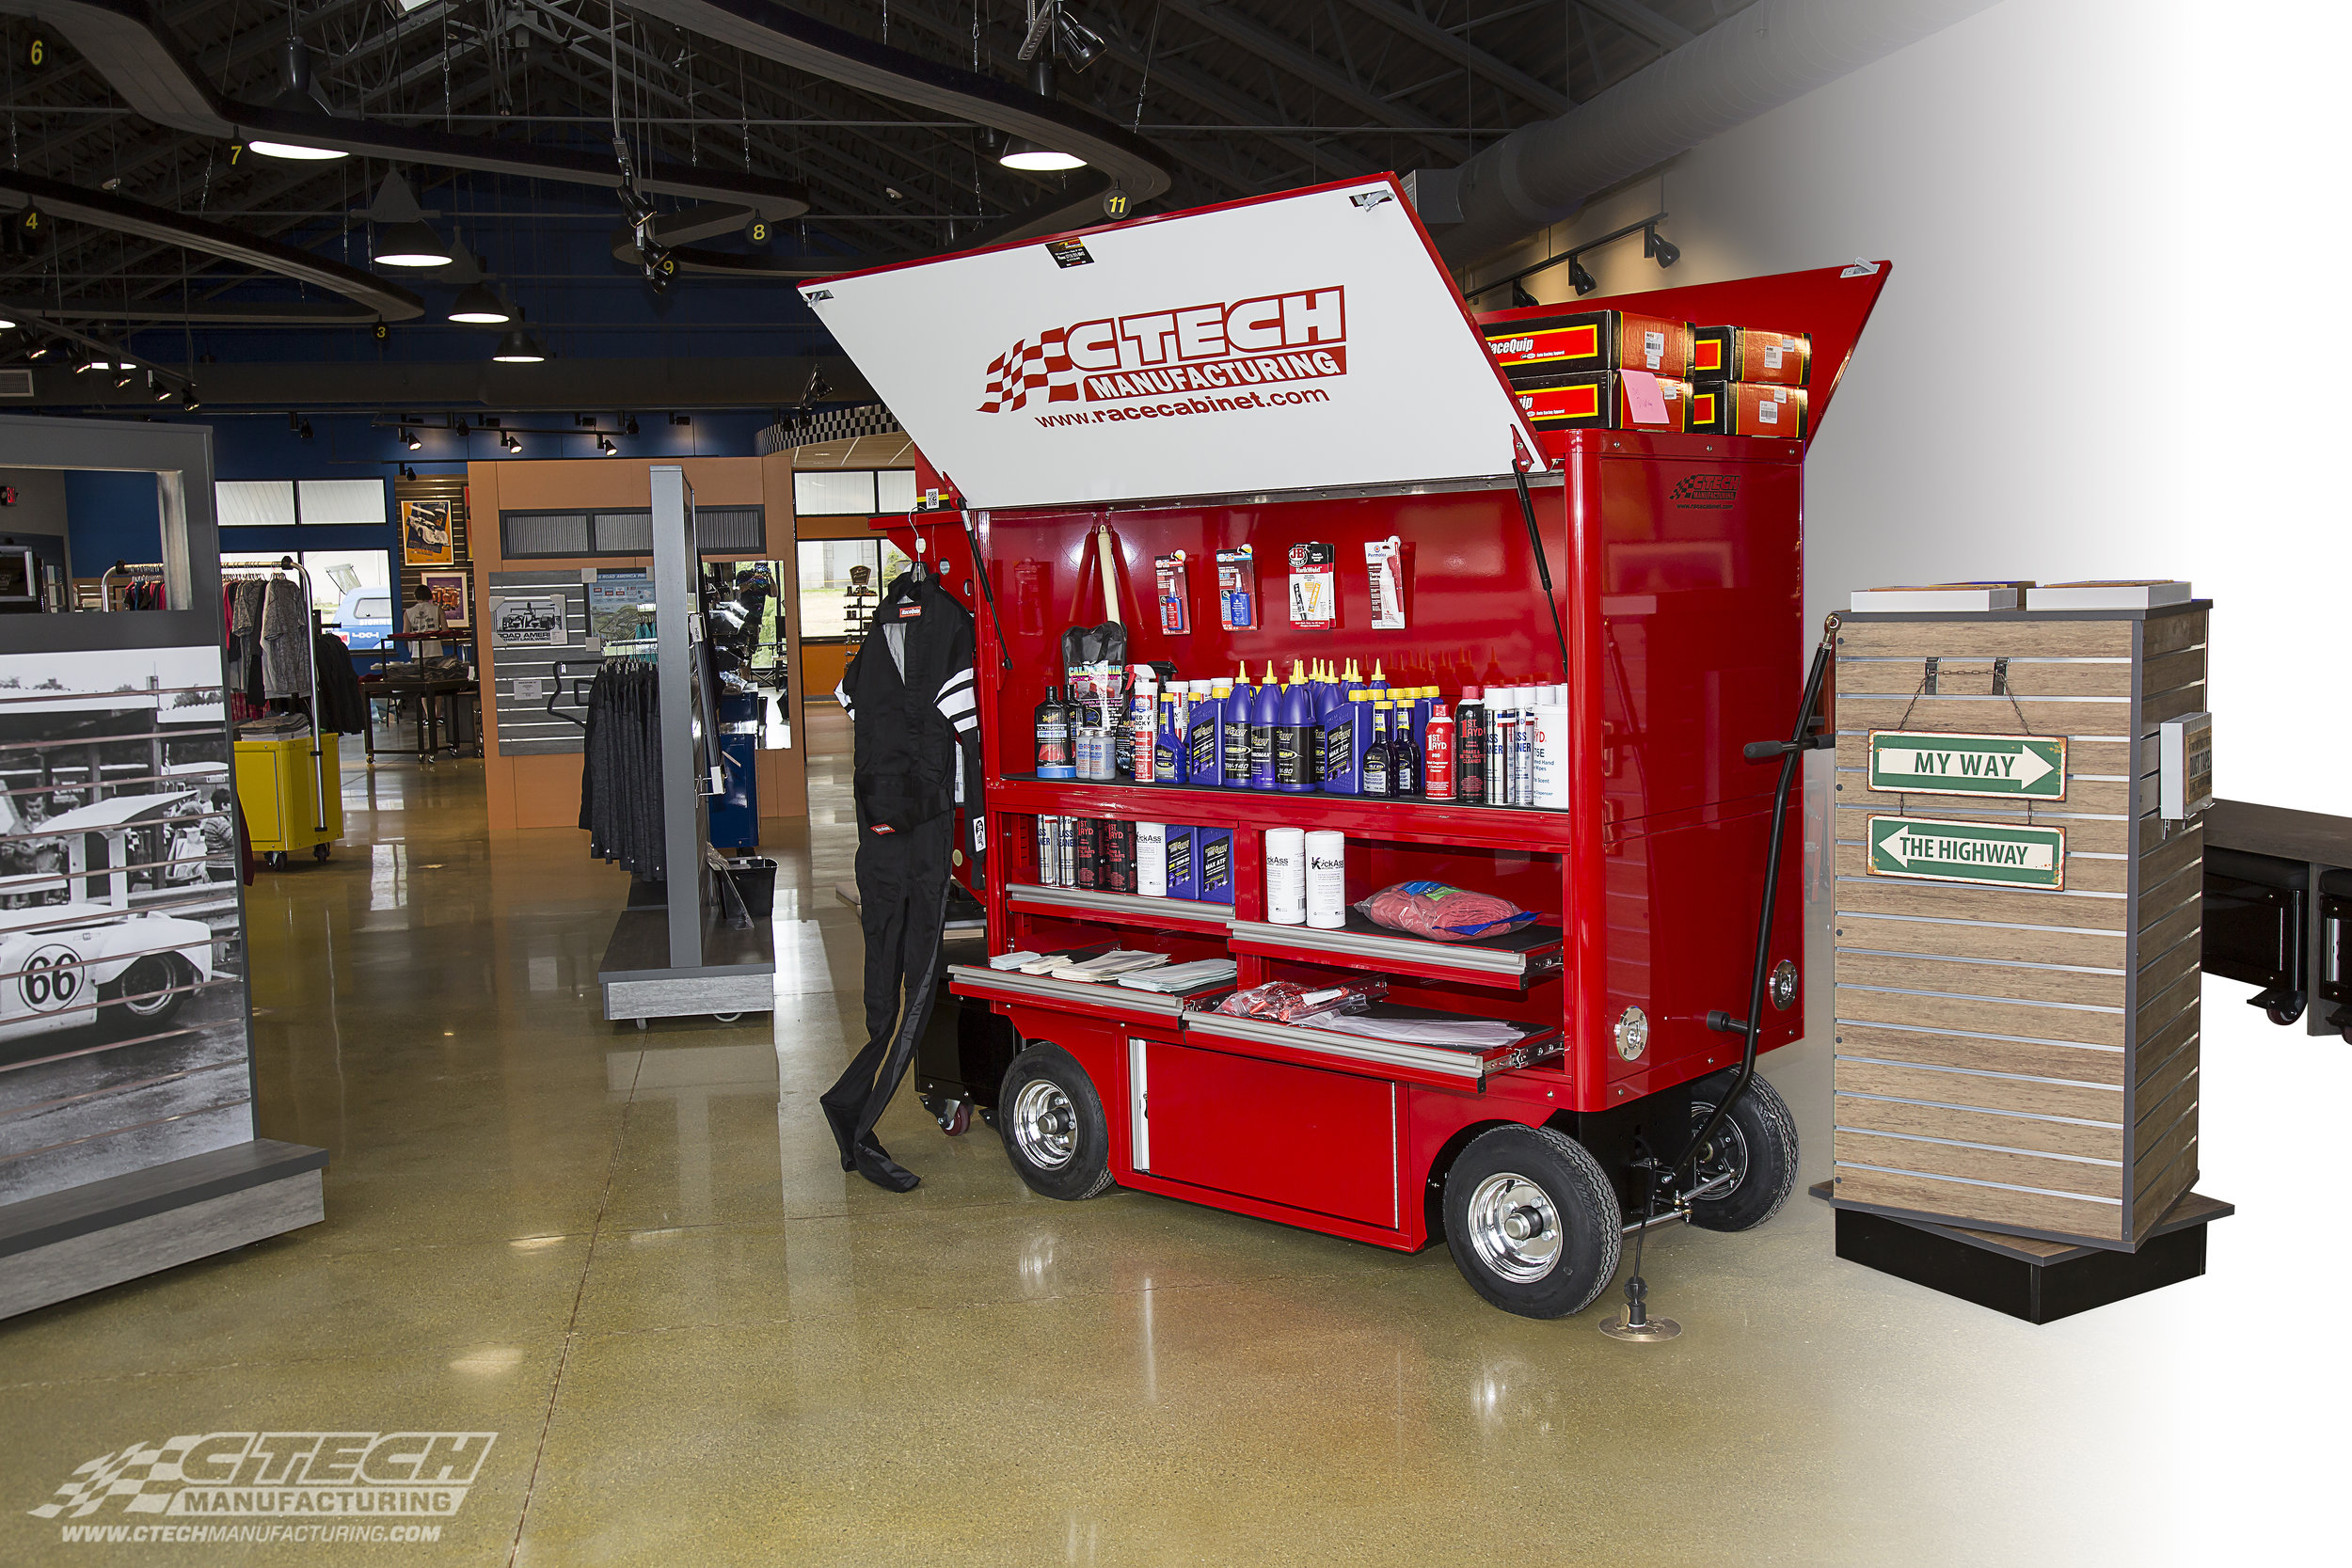 CTECH Pro Series carts are easily adapted to become mobile, all-in-one retail display and stocking units. Built-in LED lighting and MotionLatch drawers give customers a unique, interactive platform for any product showcase.